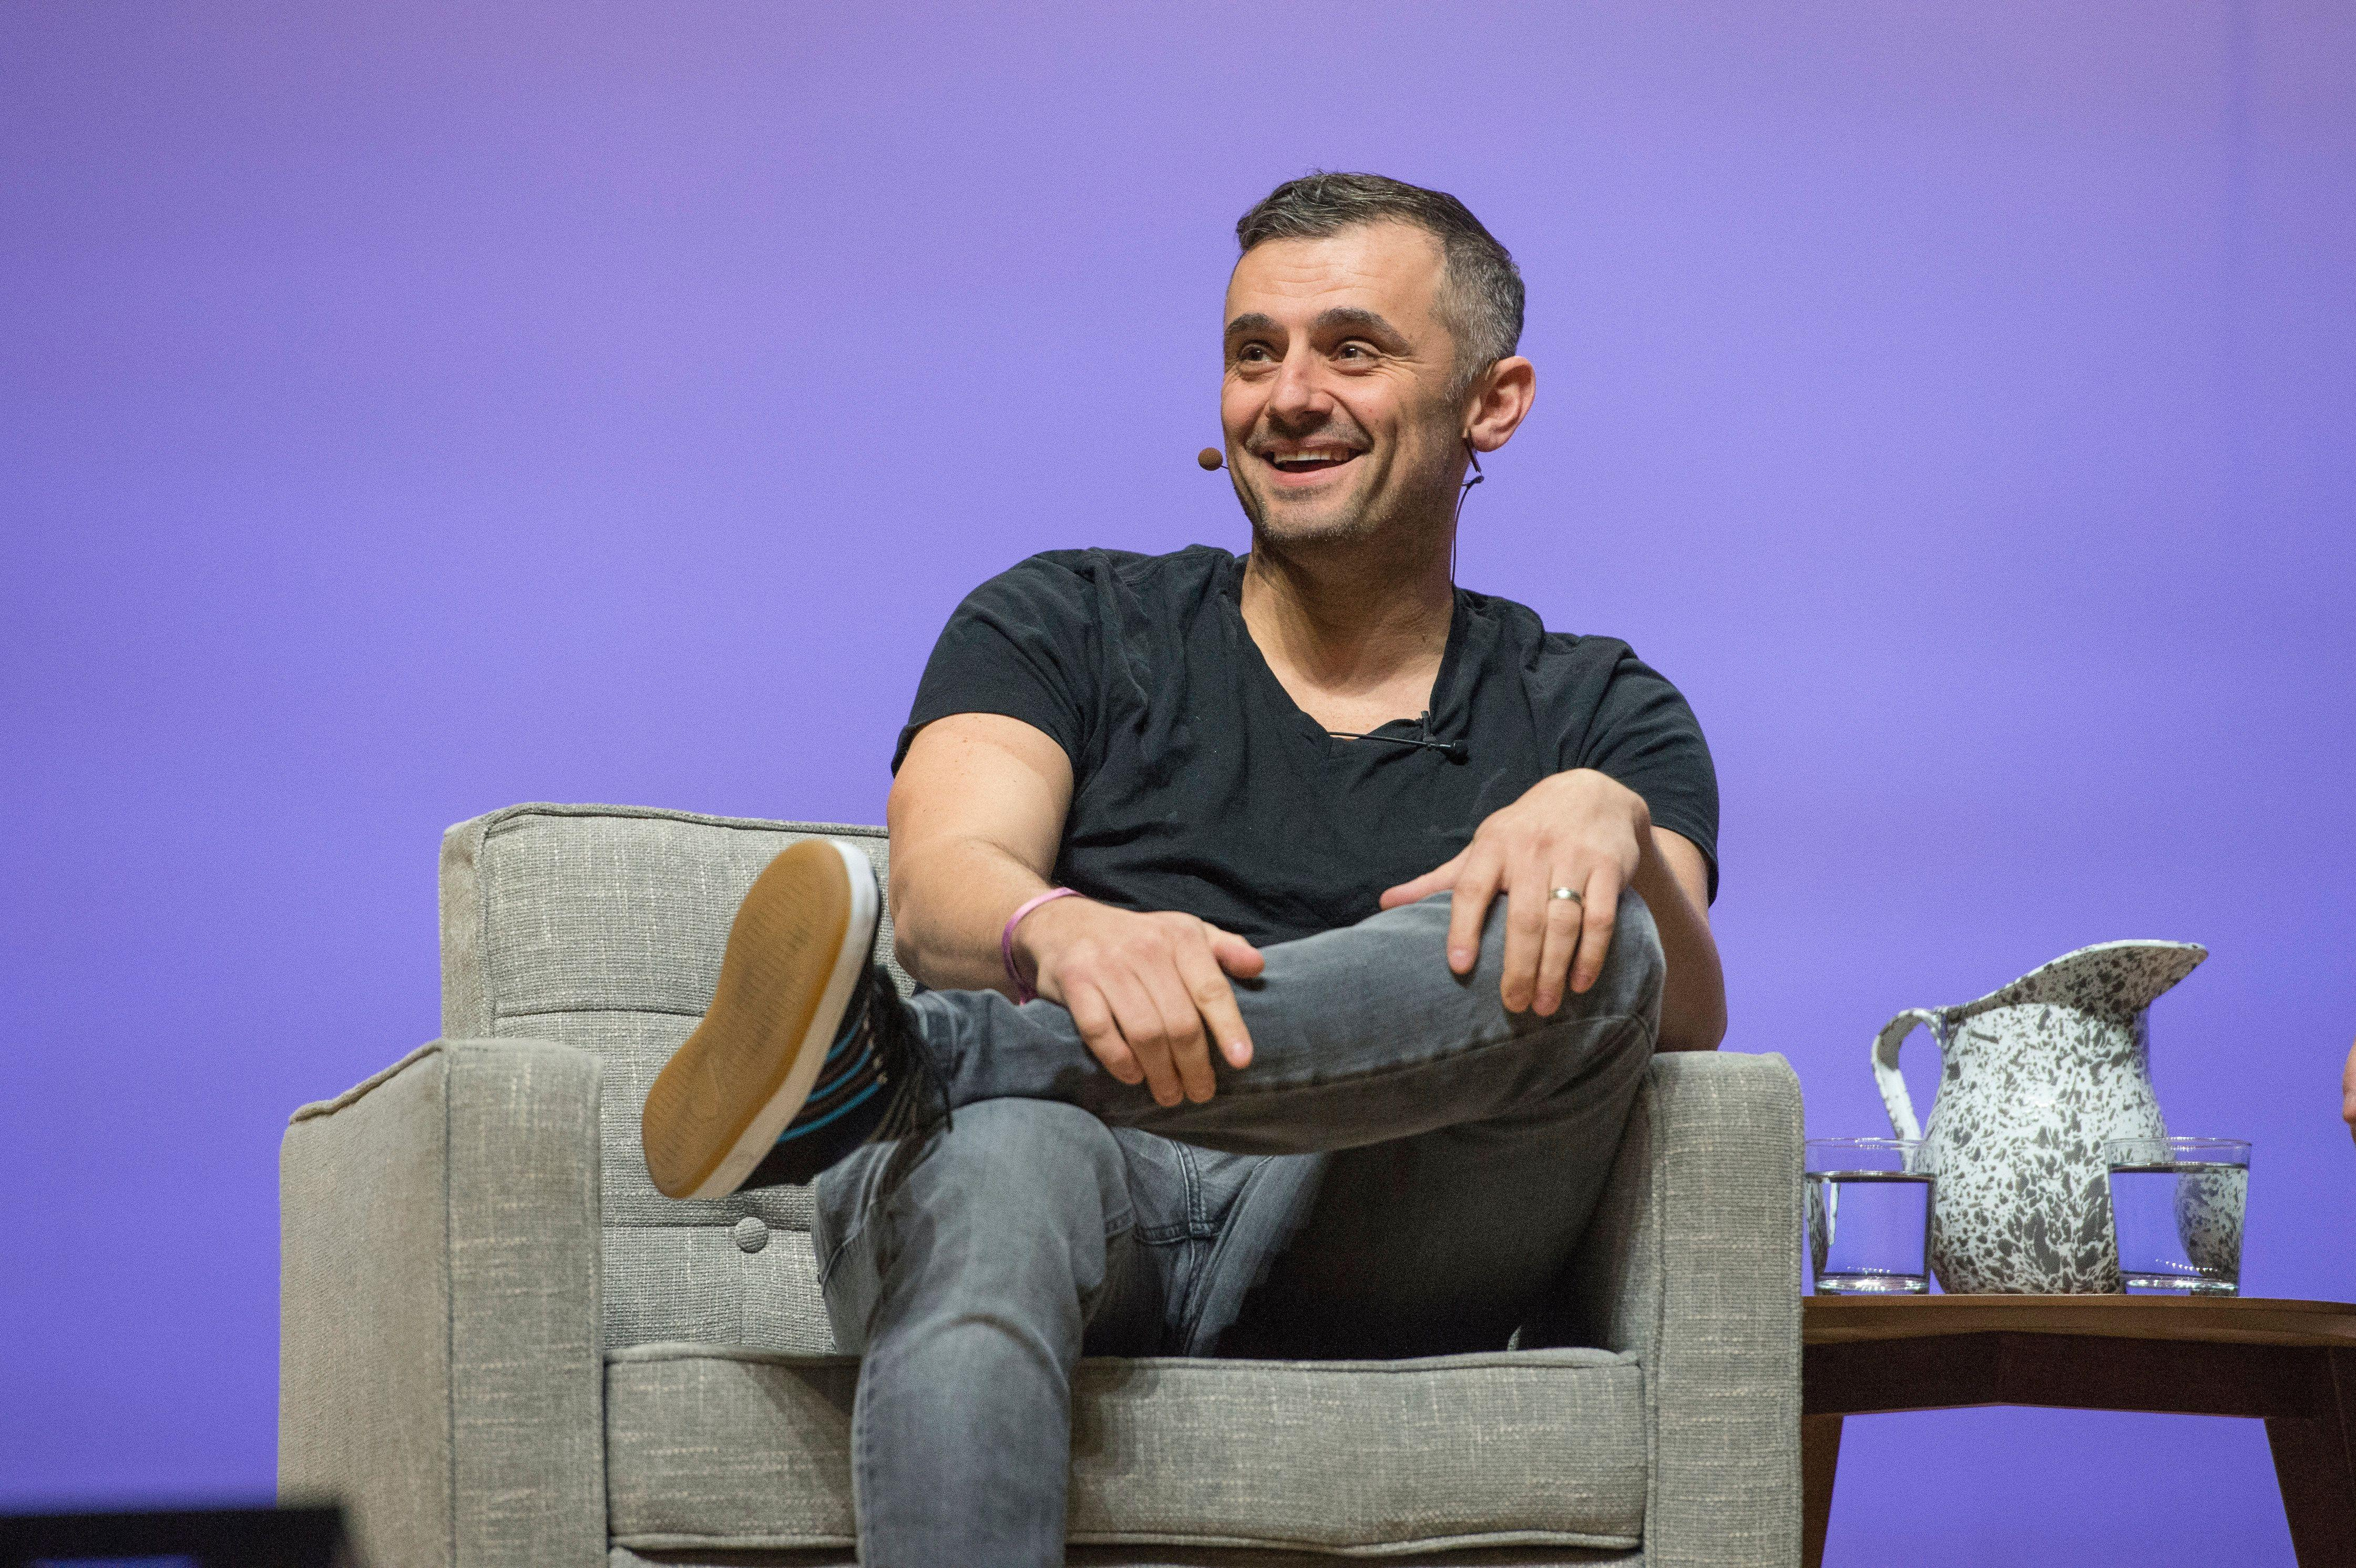 'You suck' if your business isn't successful in this strong economy, says tech investor Gary Vaynerchuk